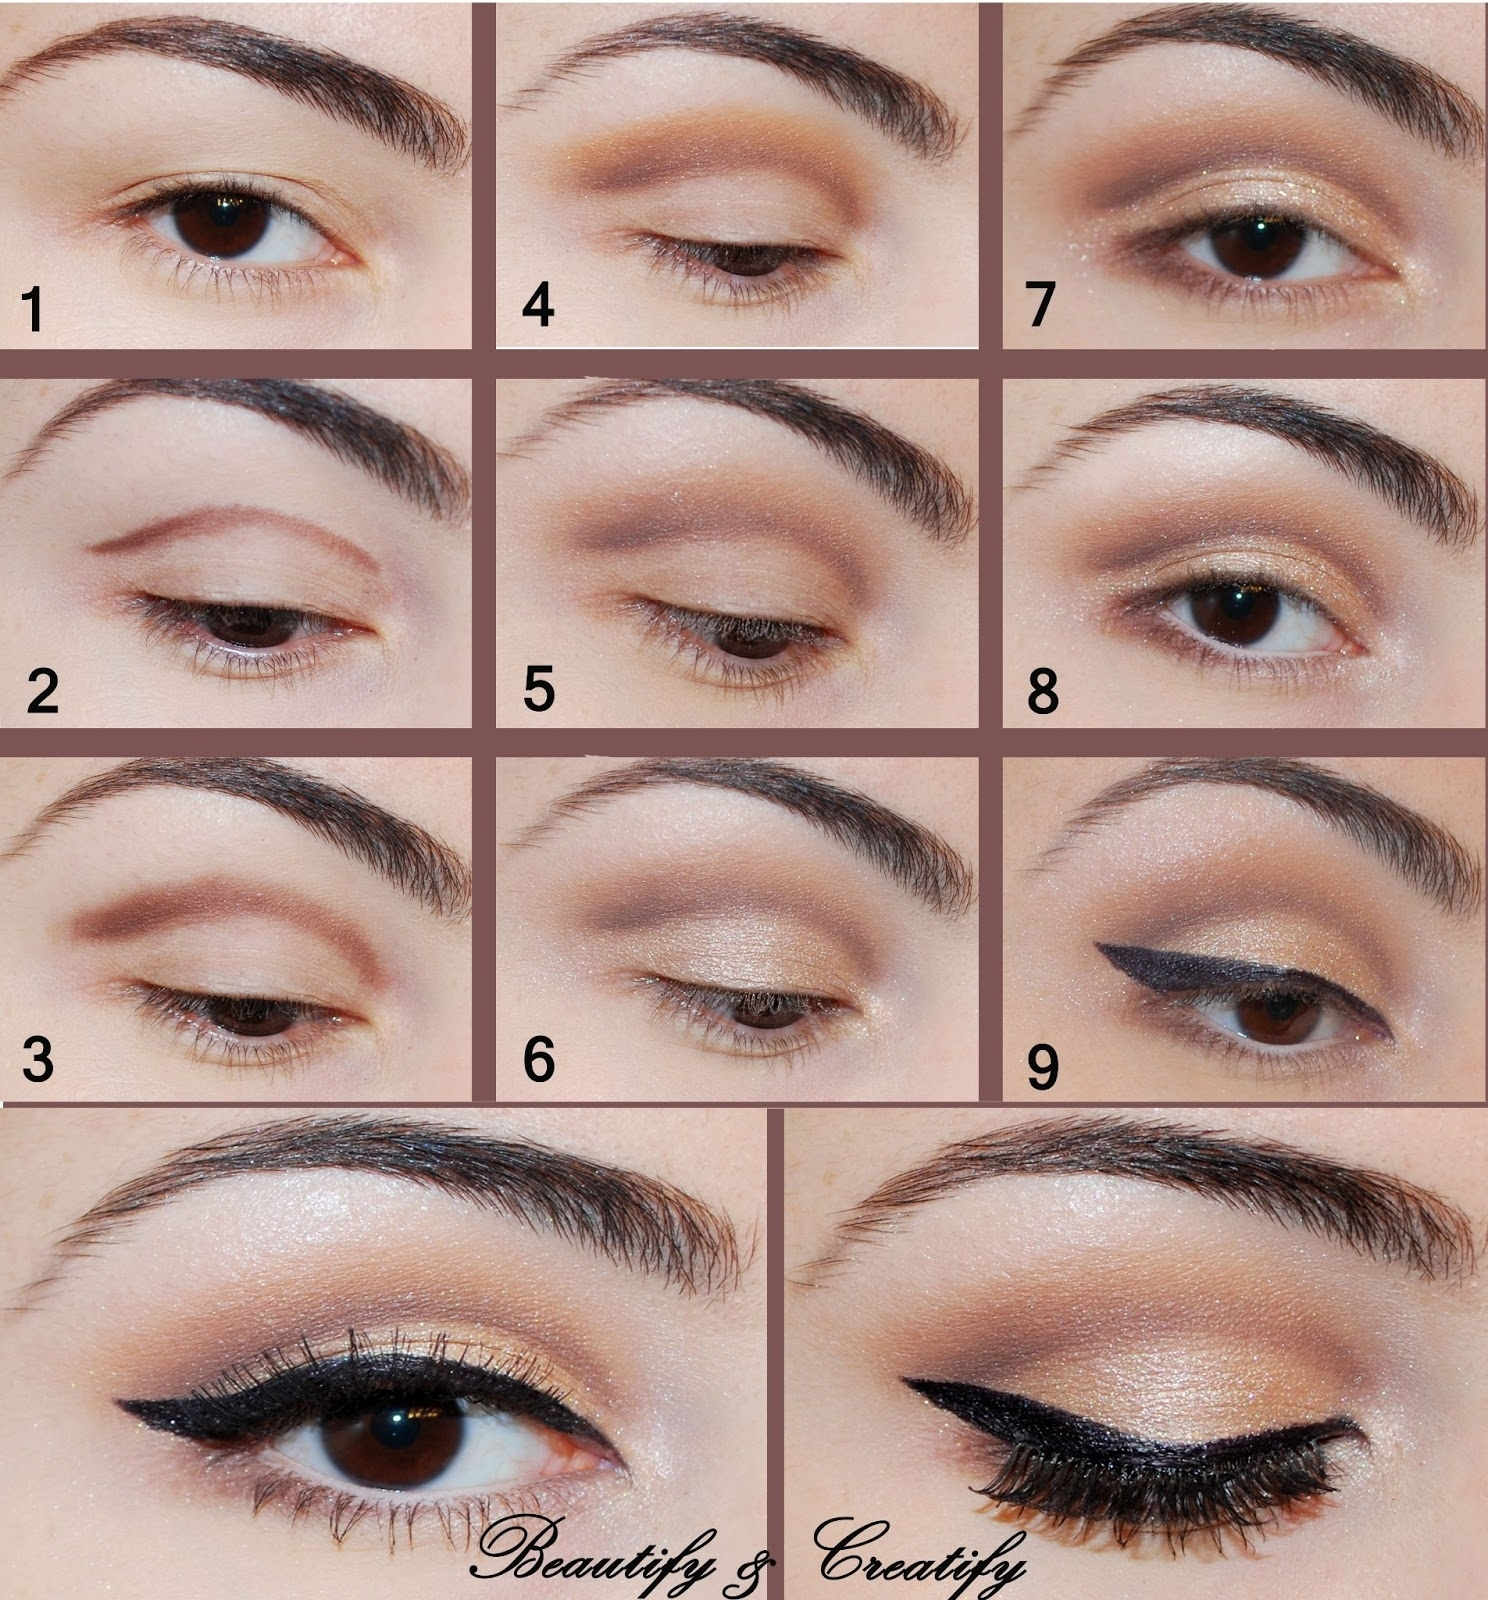 32 Easy Step By Step Eyeshadow Tutorials For Beginners | Styles Weekly in Easy Eye Makeup Step By Step With Pictures